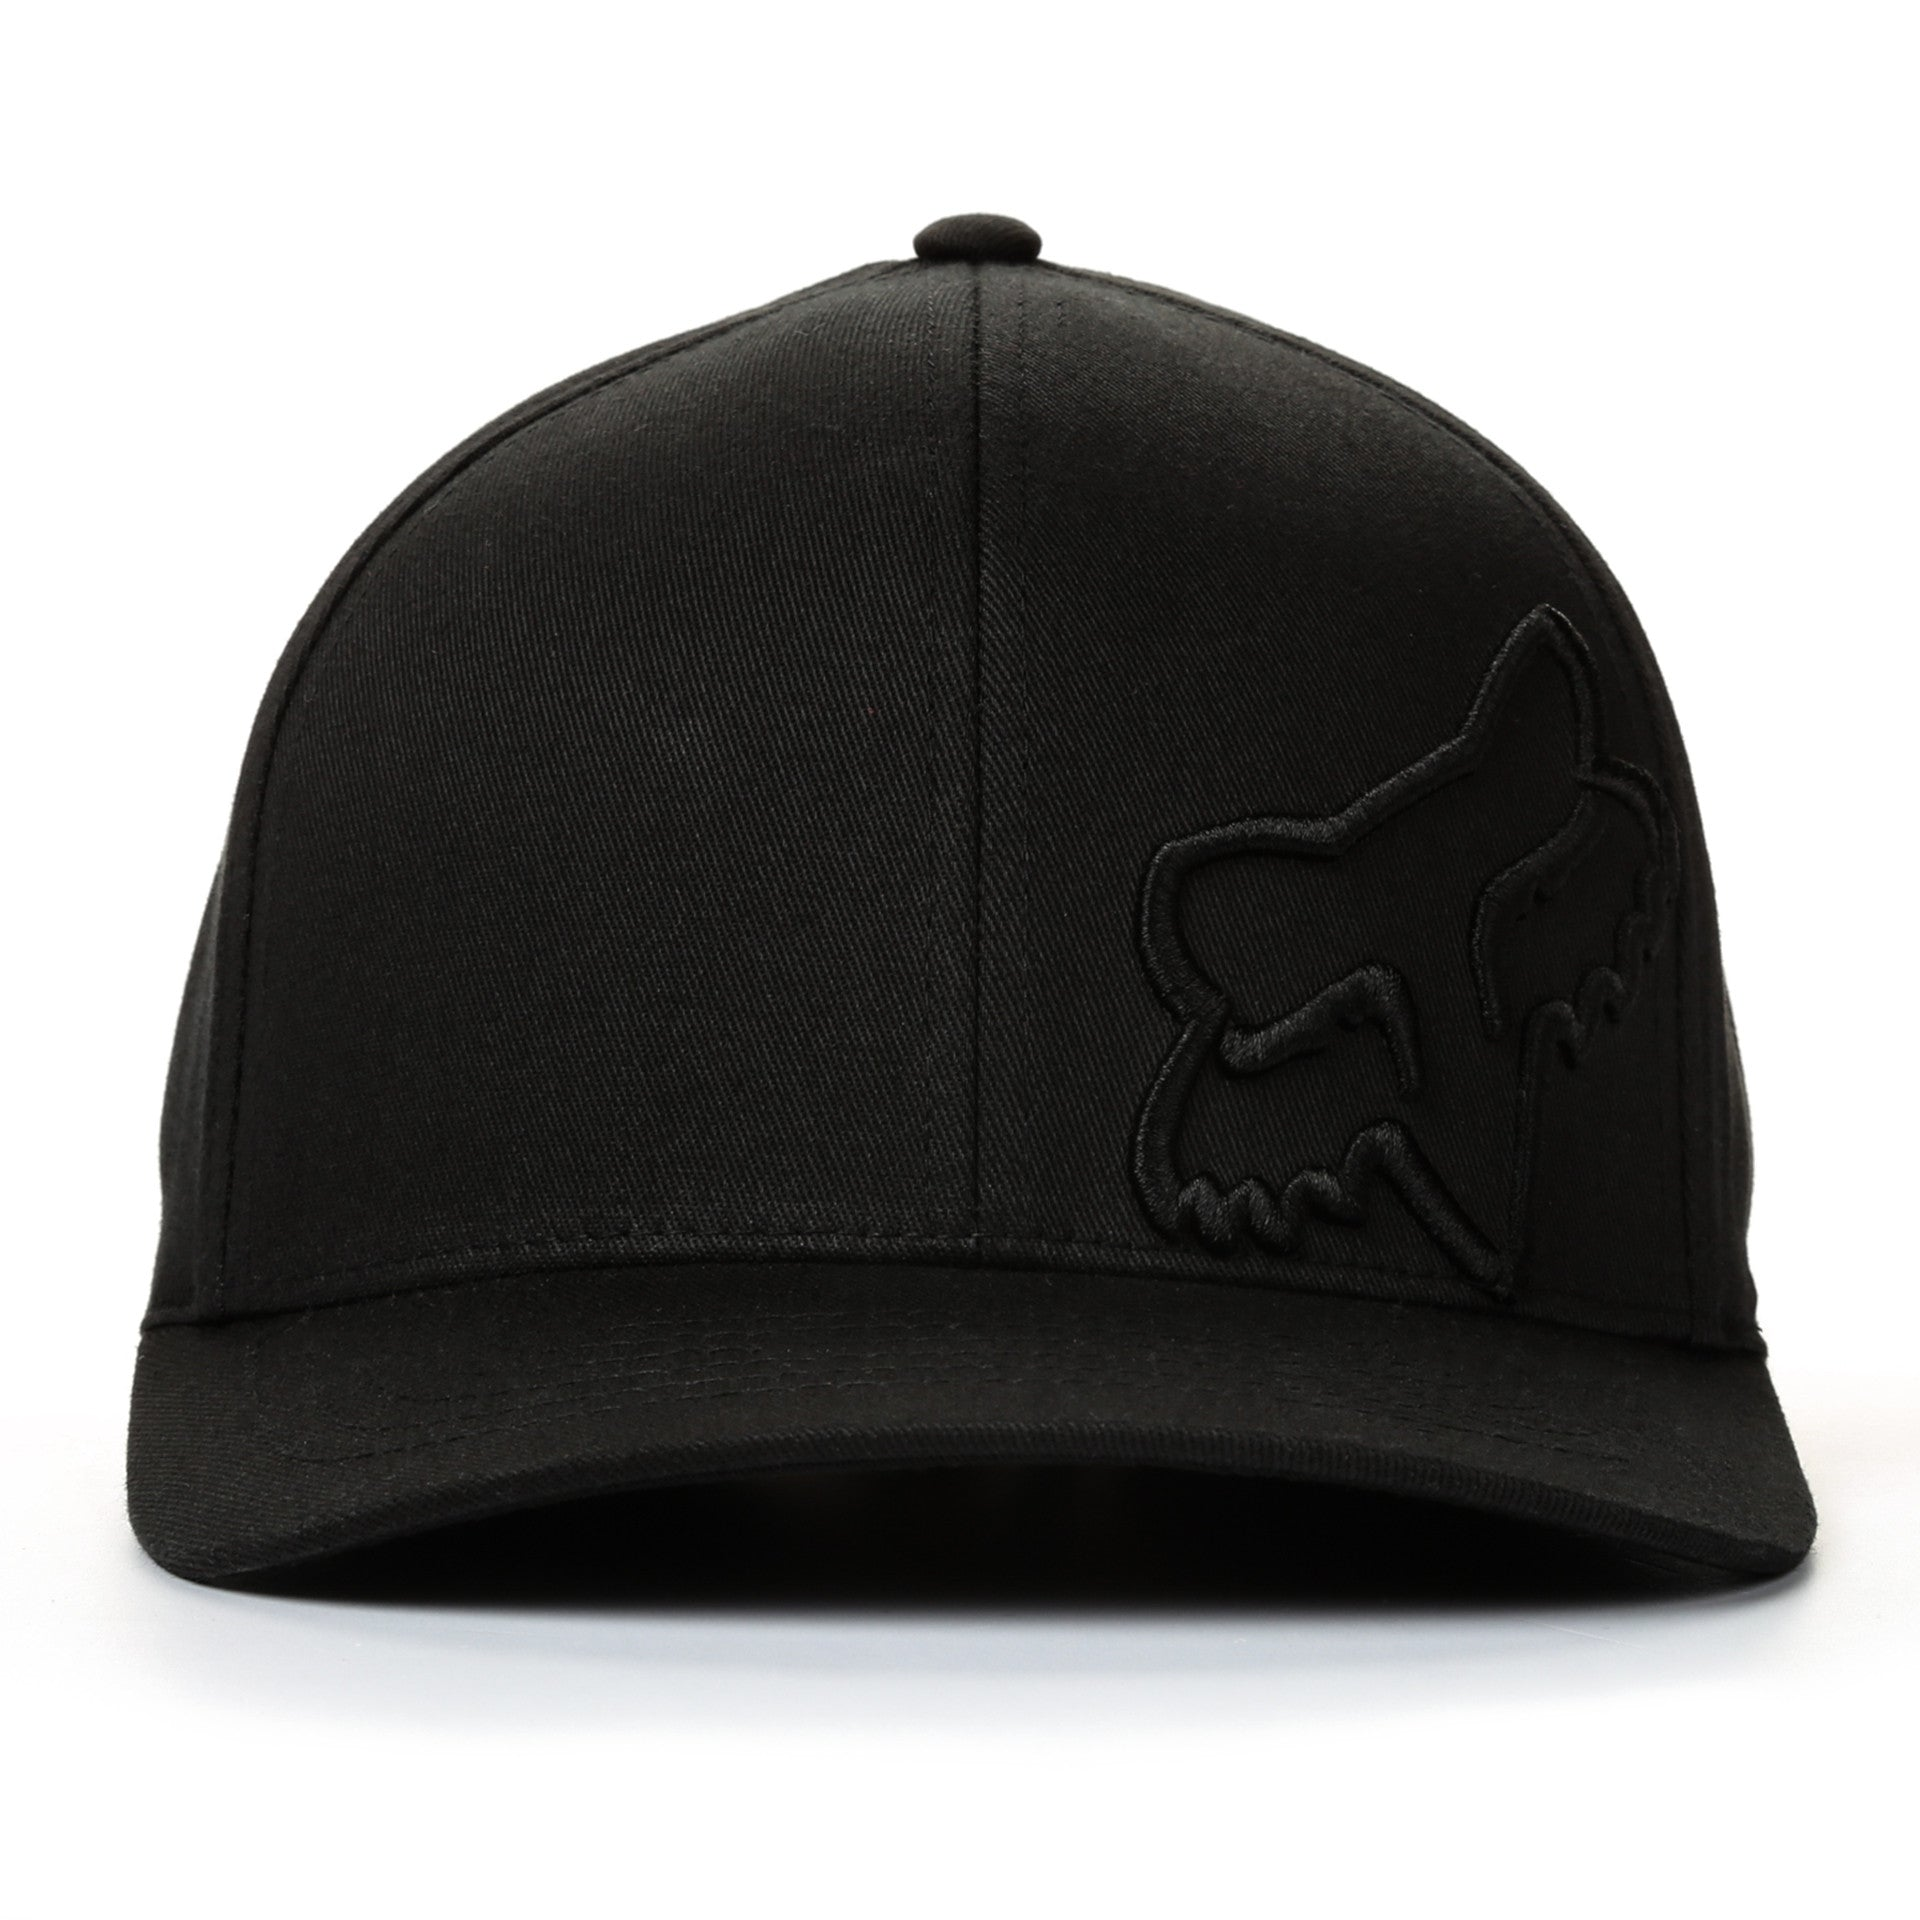 b0b5cb75 Adidas Flexfit Black Hat